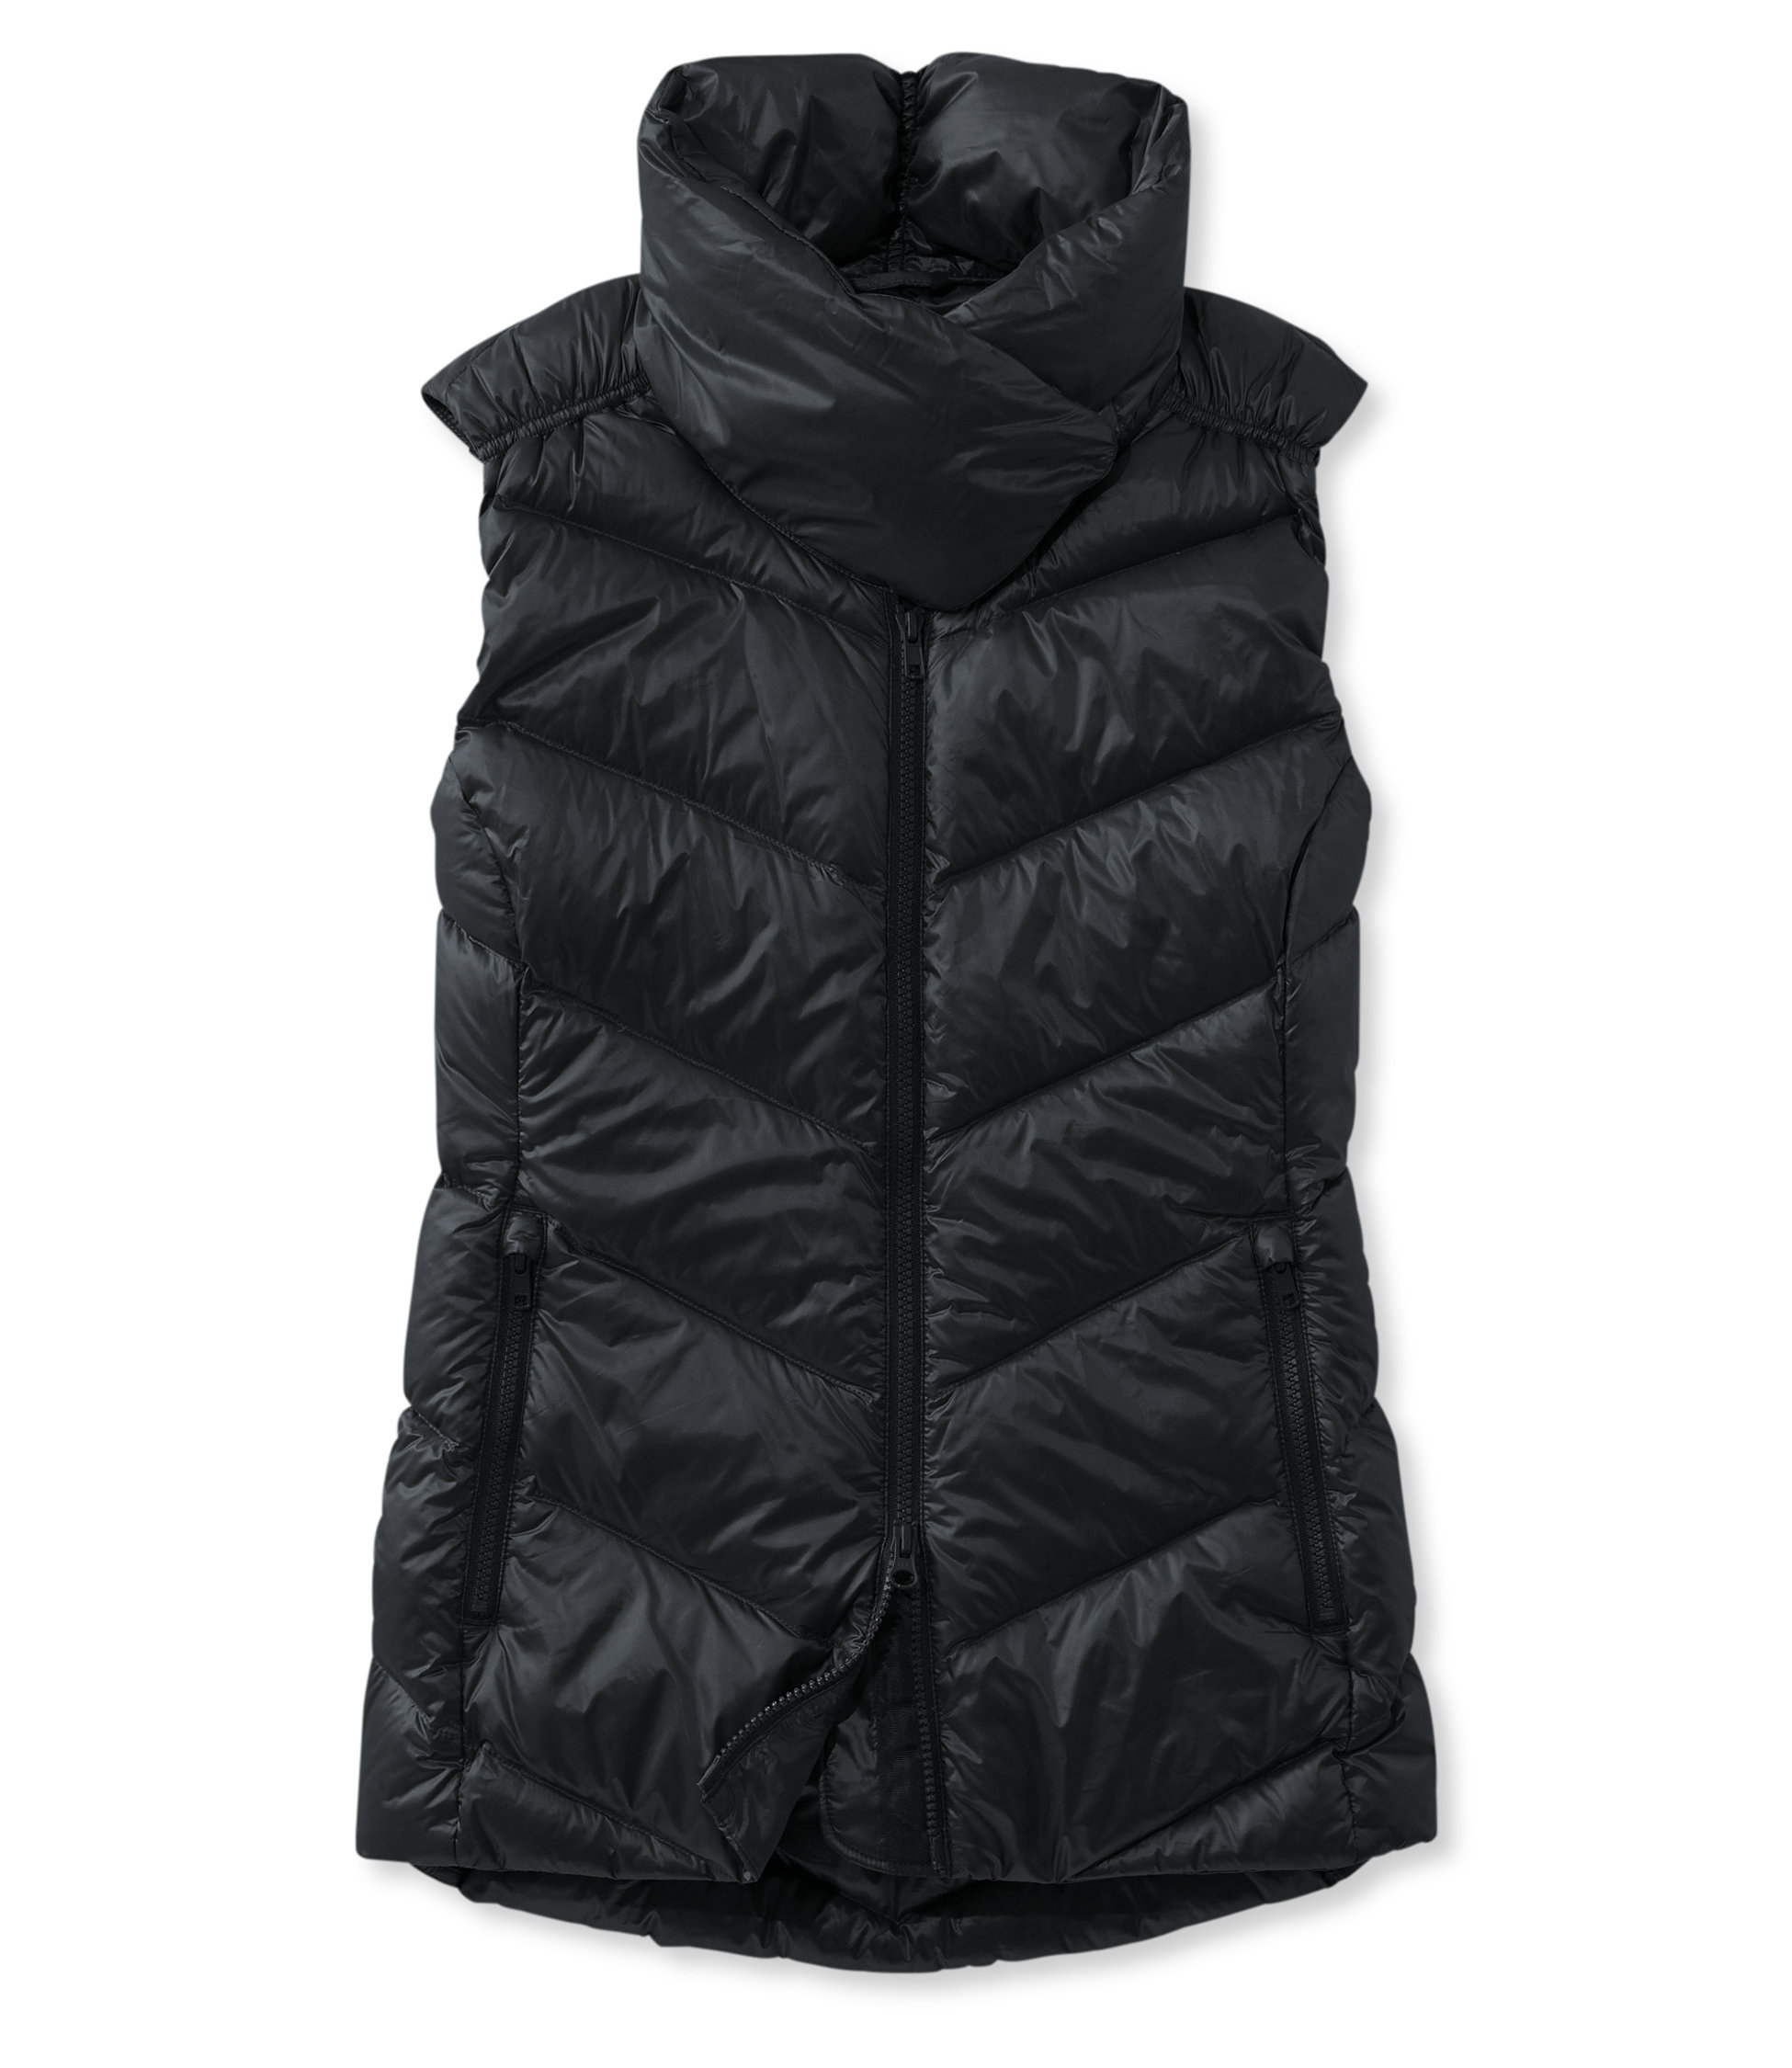 L.L.Bean Warm And Light Vest